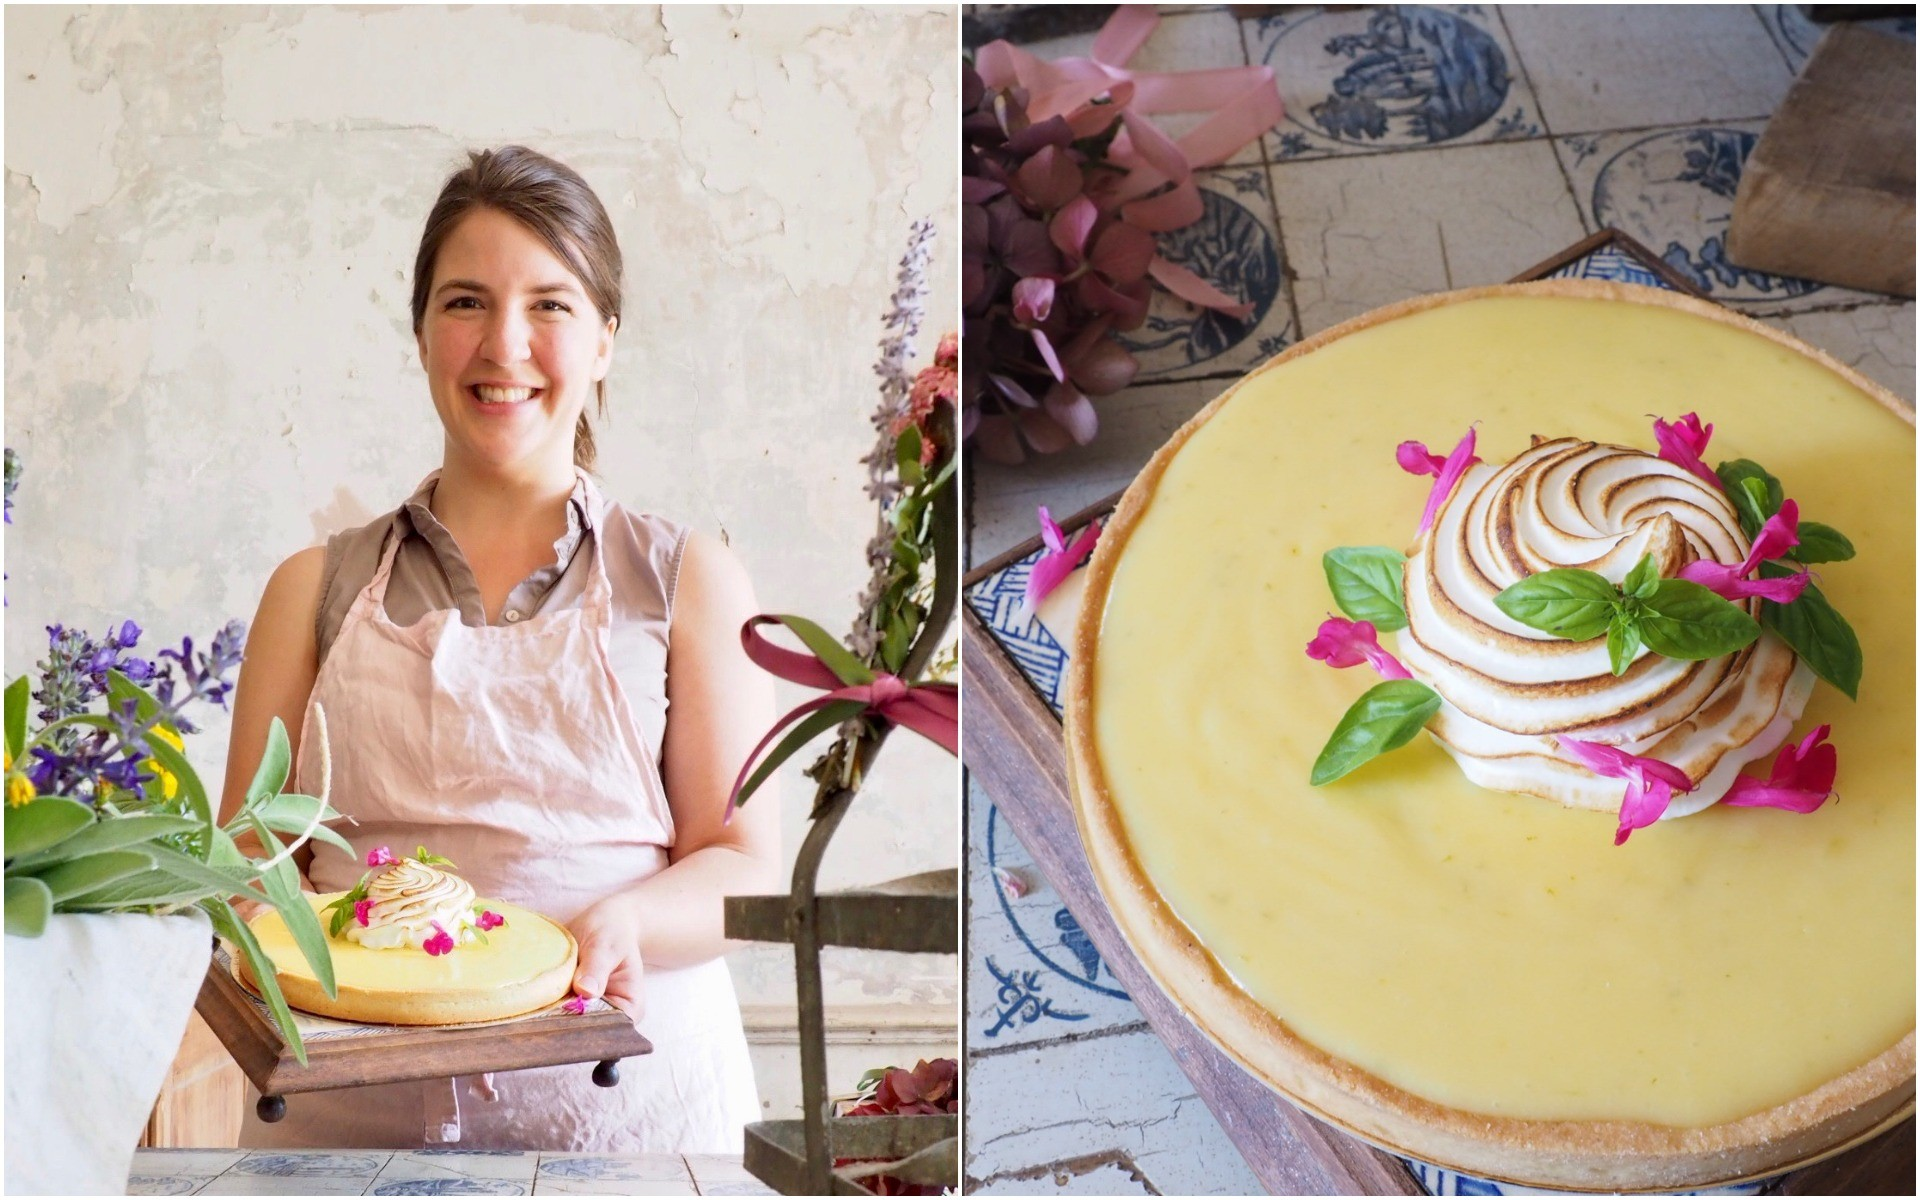 Exciting News: Pastry Weekend Adventure at Camont